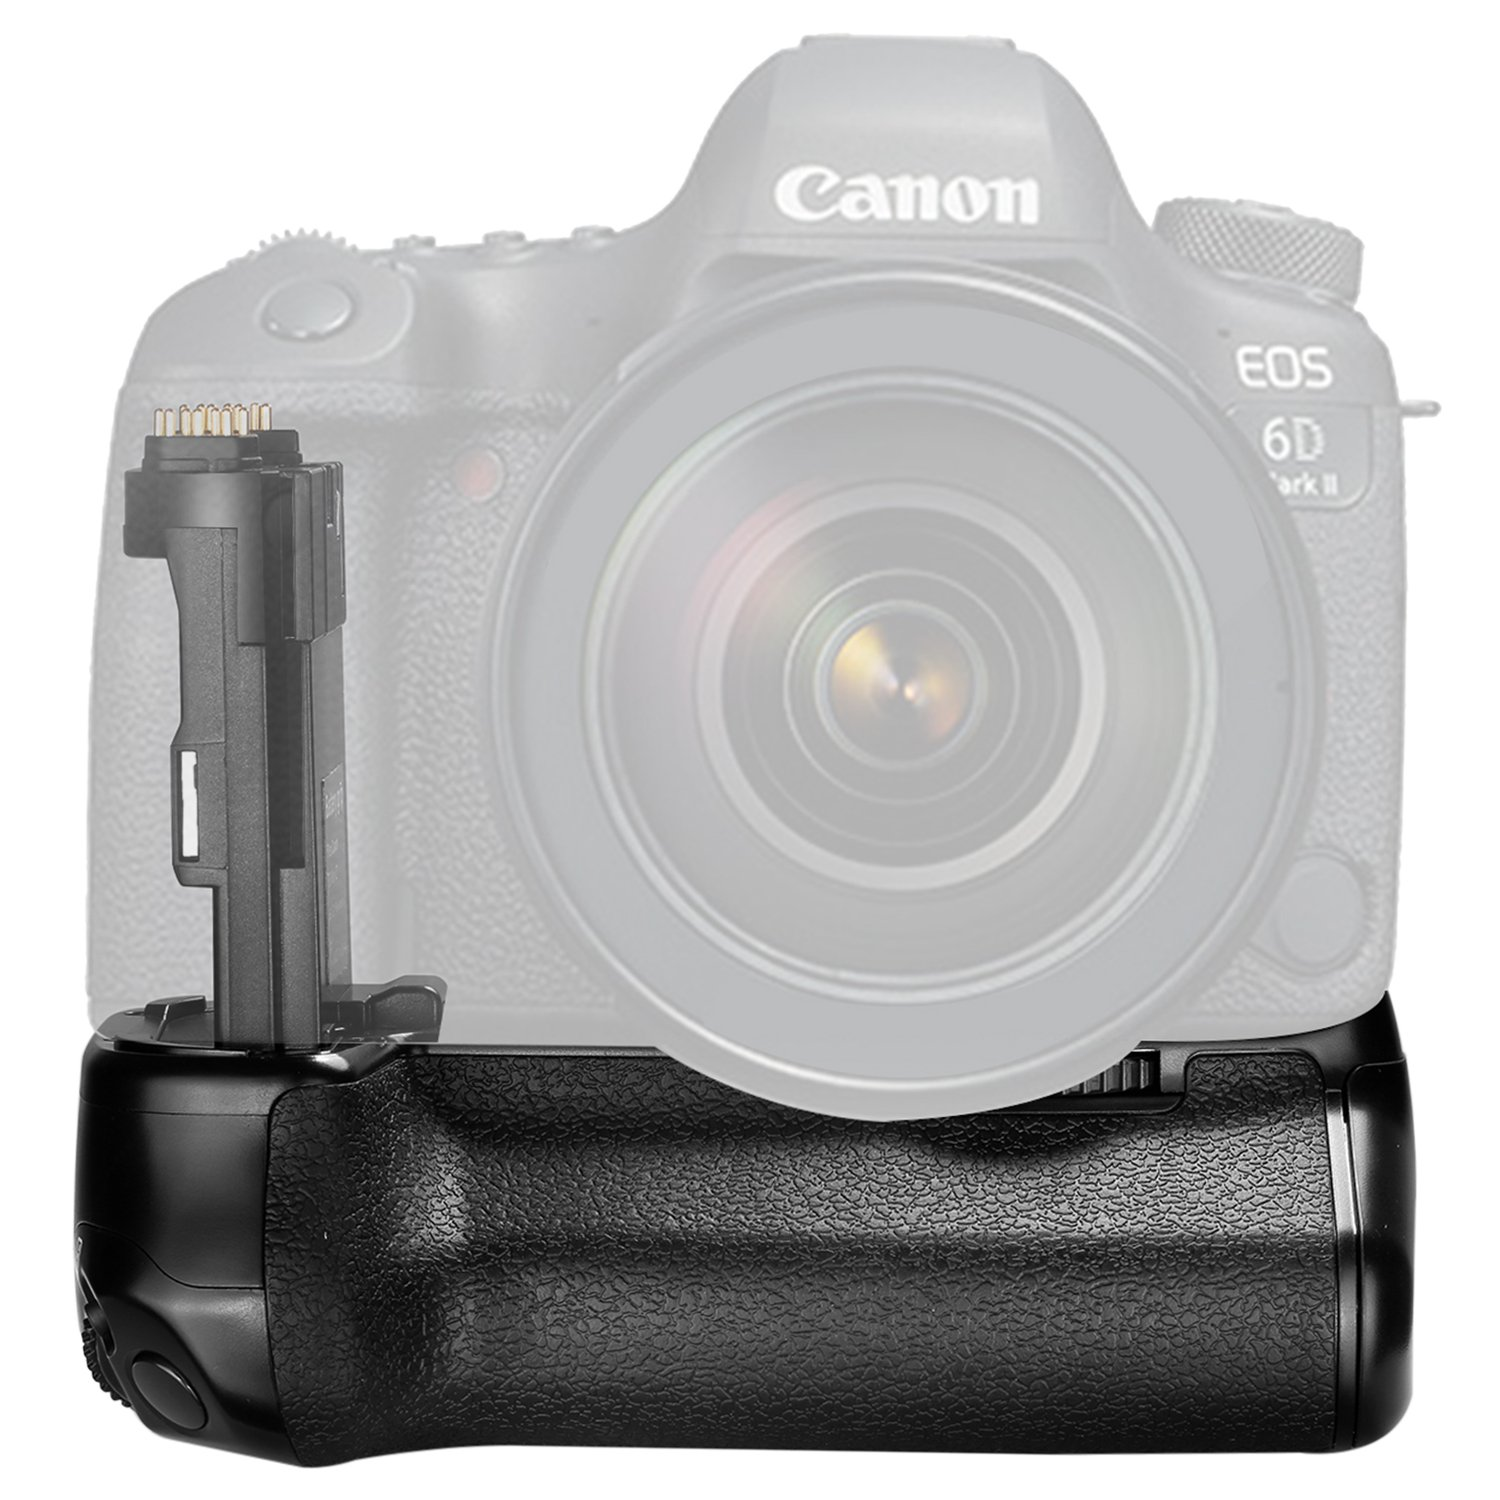 Neewer Pro Camera Battery Grip Replacement for Canon BG-E21 for Canon 6D Mark II DSLR Camera, Work with One or Two LP-E6 Rechargeable Li-ion Battery (Battery NOT Included) 10092016